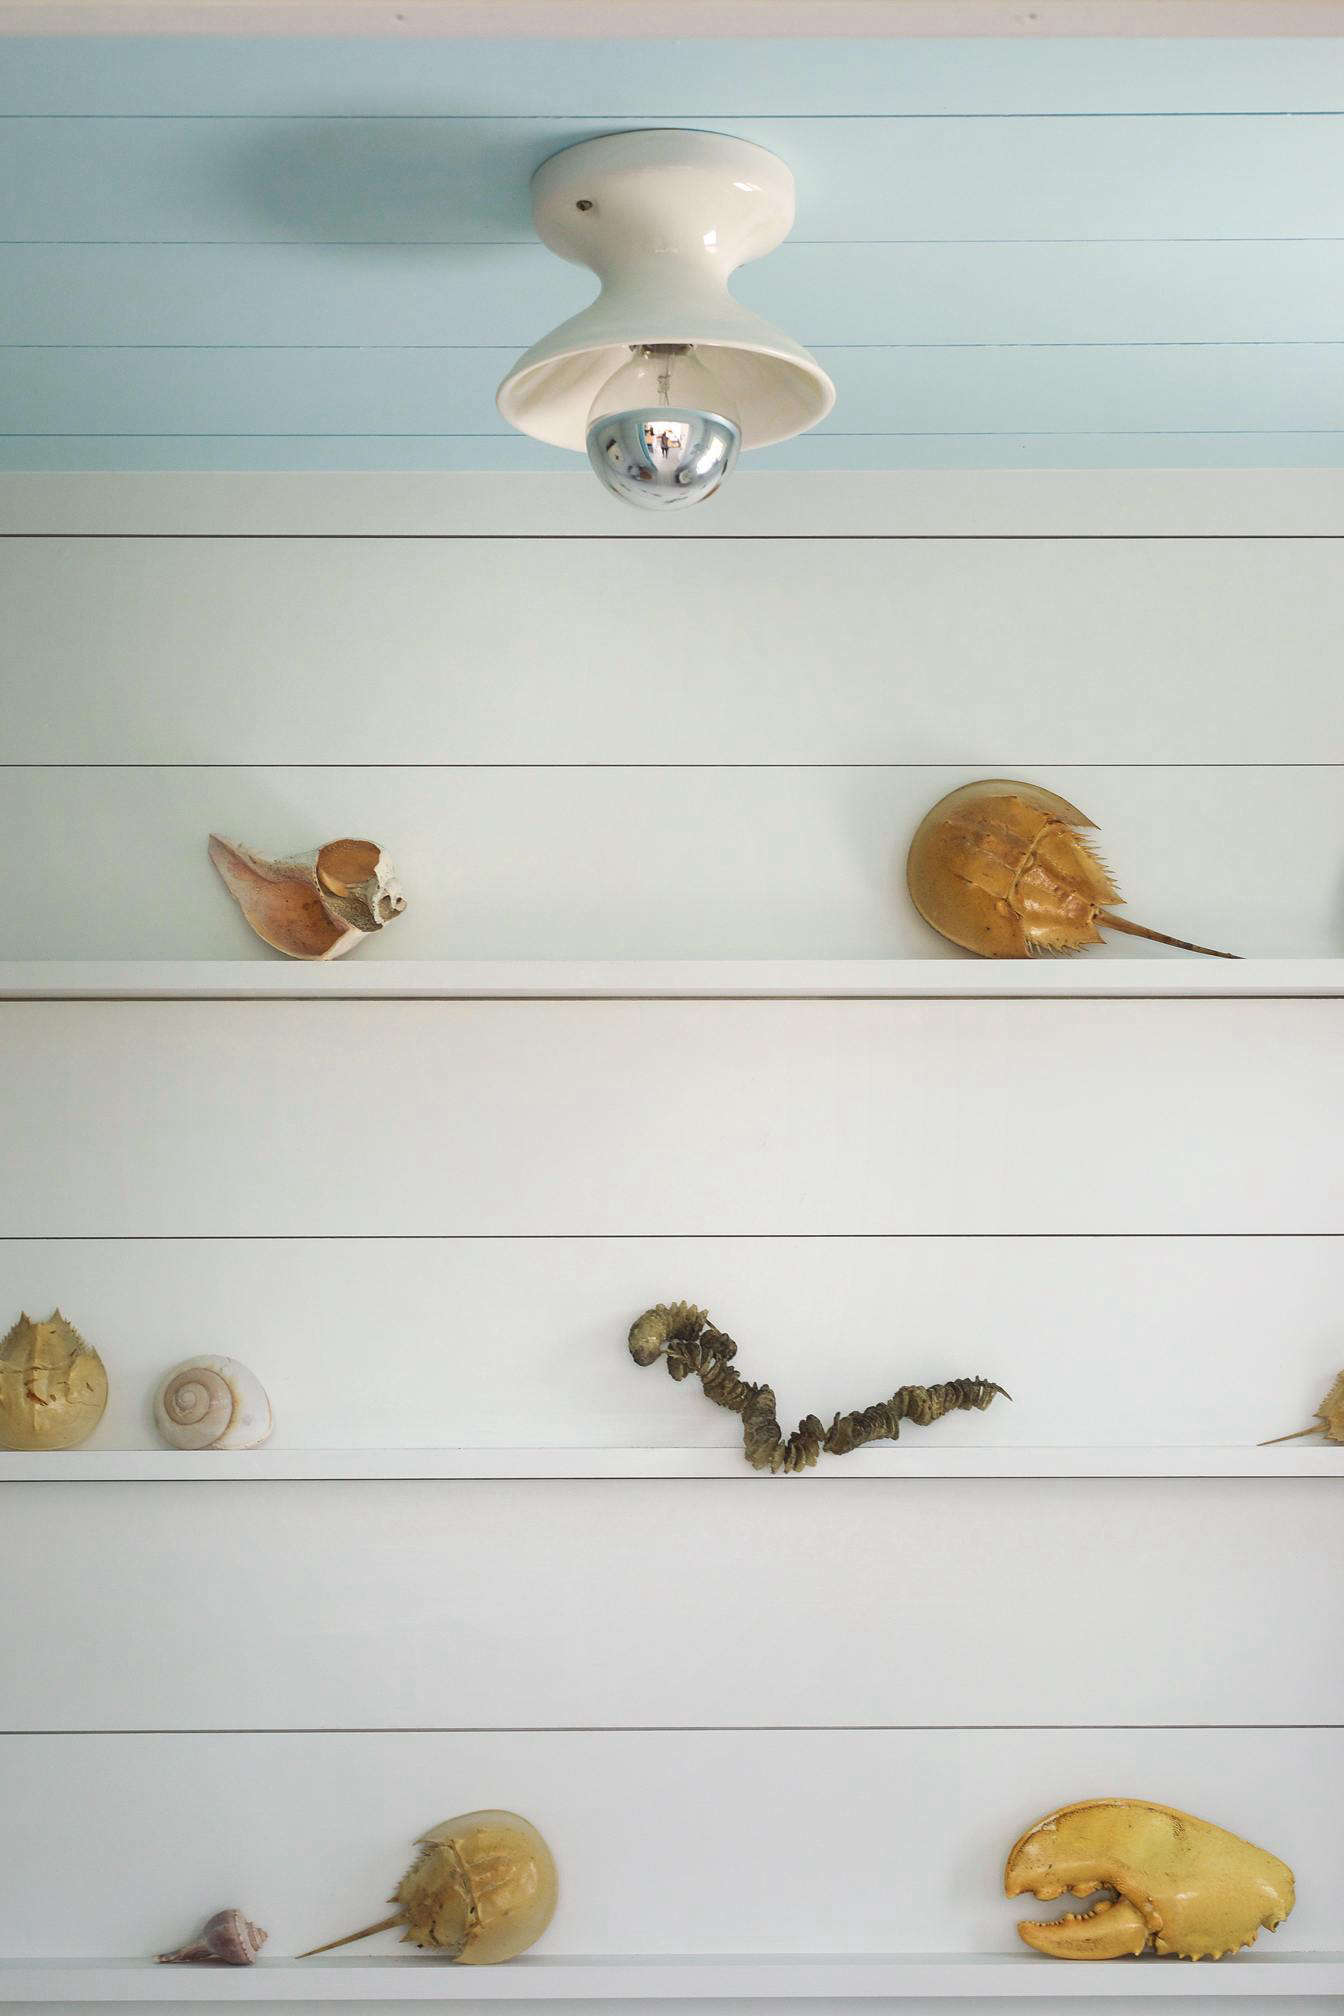 Victoria lined the small bath with shallow shelves as display perches for beachcombing finds. The ceiling light is the Alabax Medium from Schoolhouse Electric.